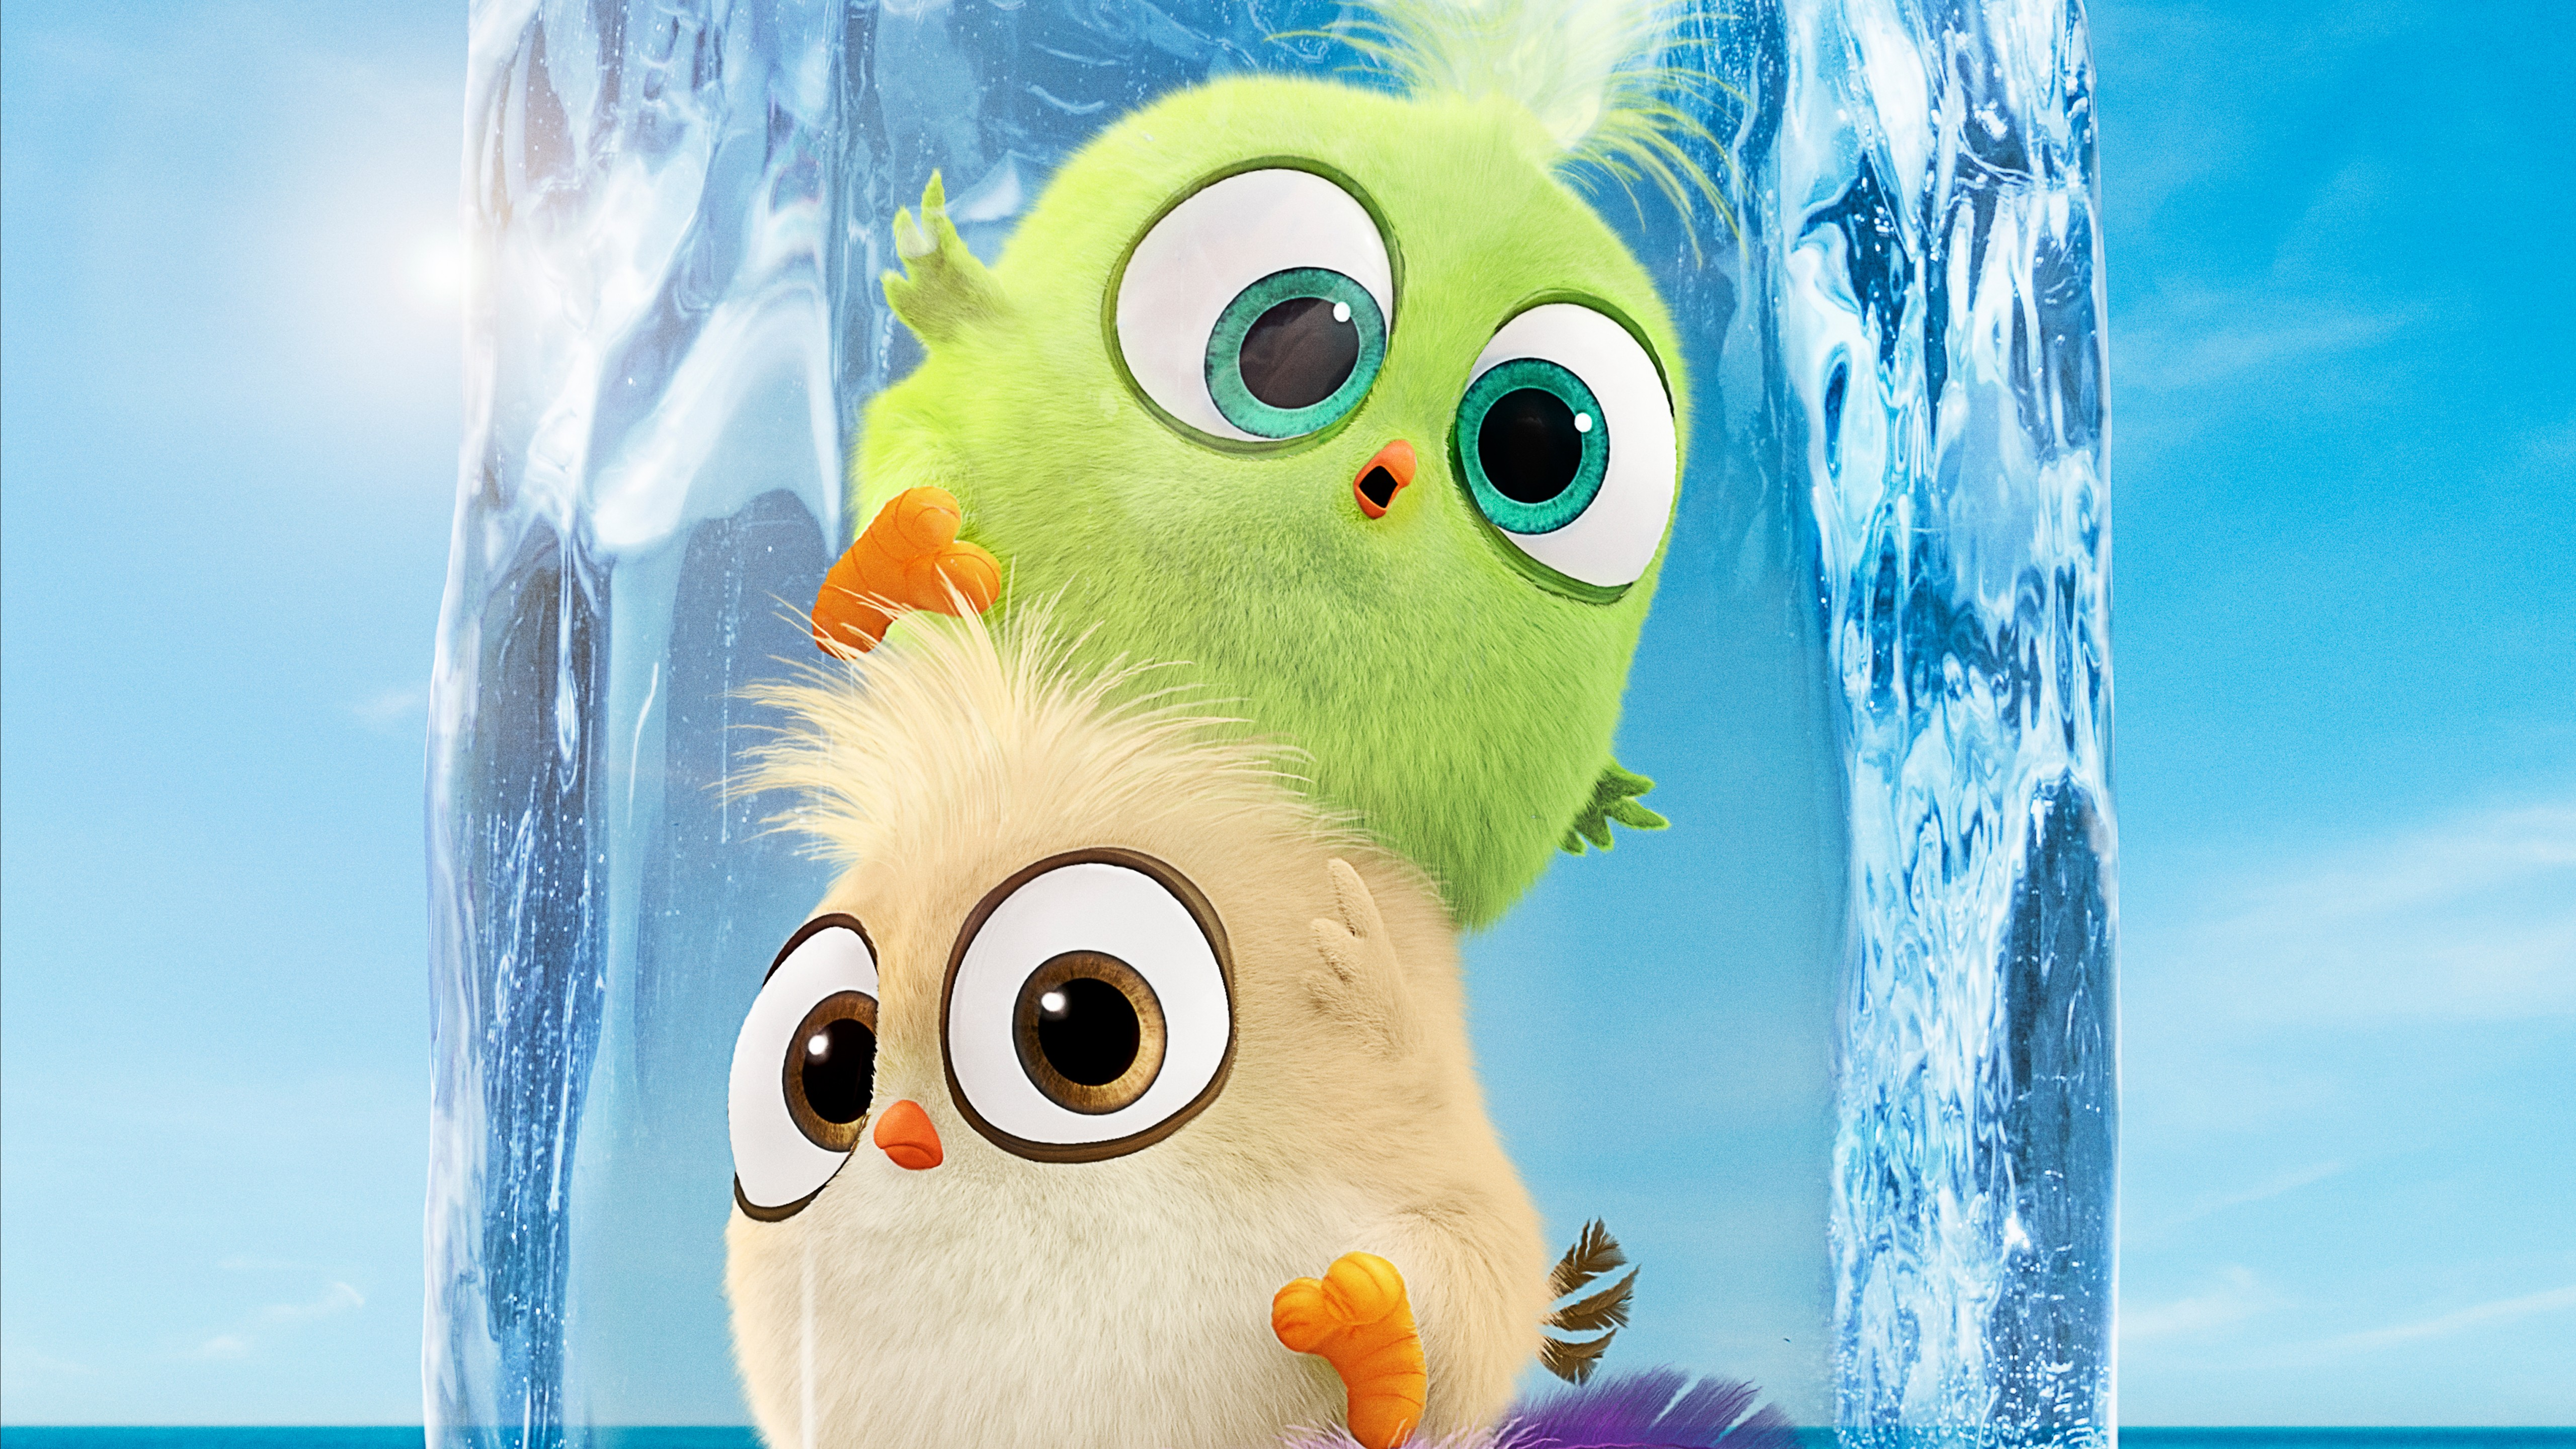 The Angry Birds Movie 2 Wallpaper 5k Ultra HD ID:3288